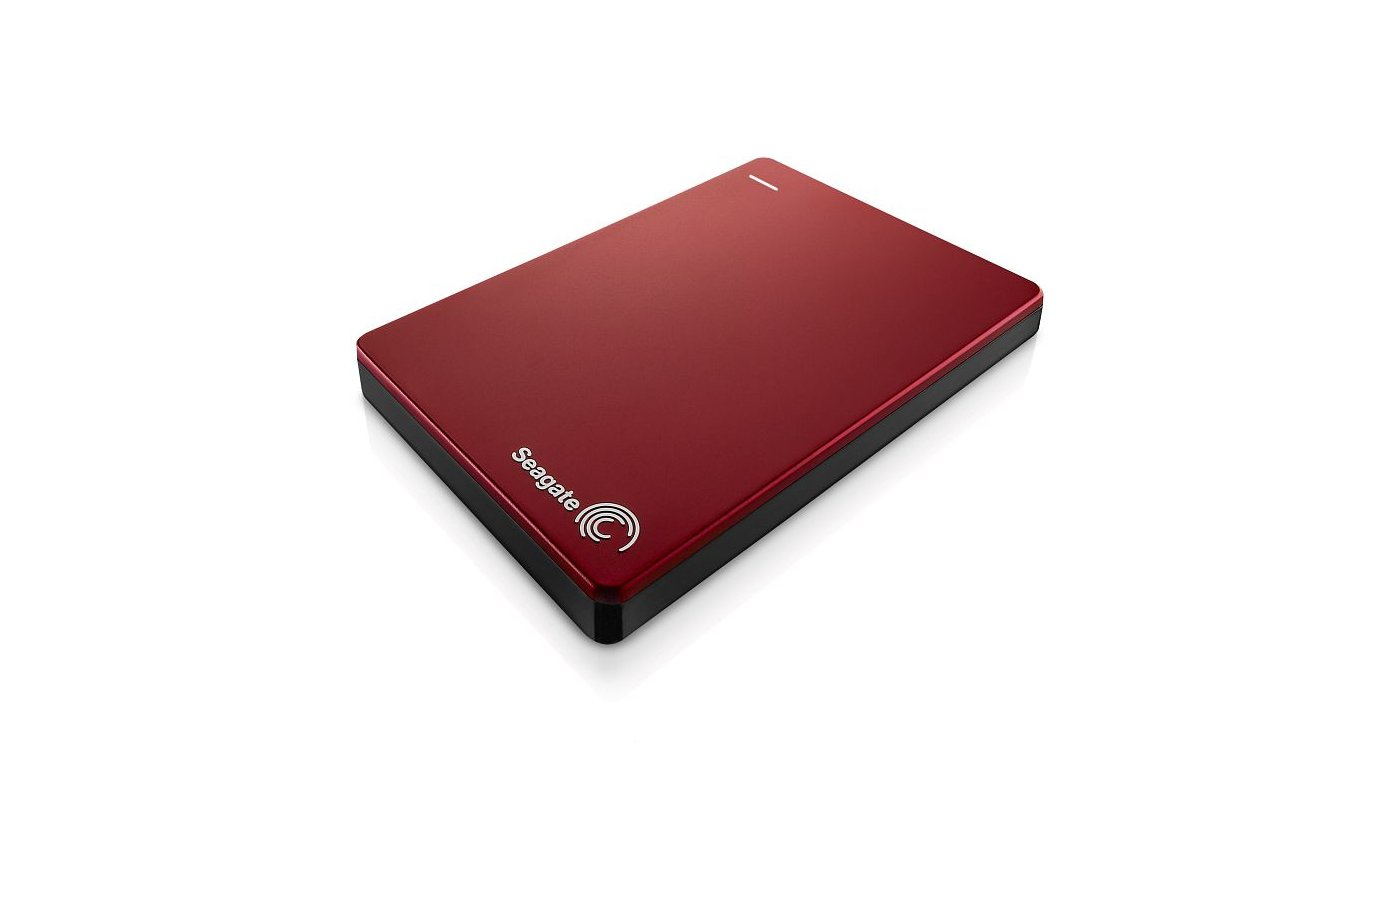 Внешний жесткий диск Seagate STDR1000203 Slim 2.5 1000GB 5400RPM 8MB USB 3.0 RTL Red